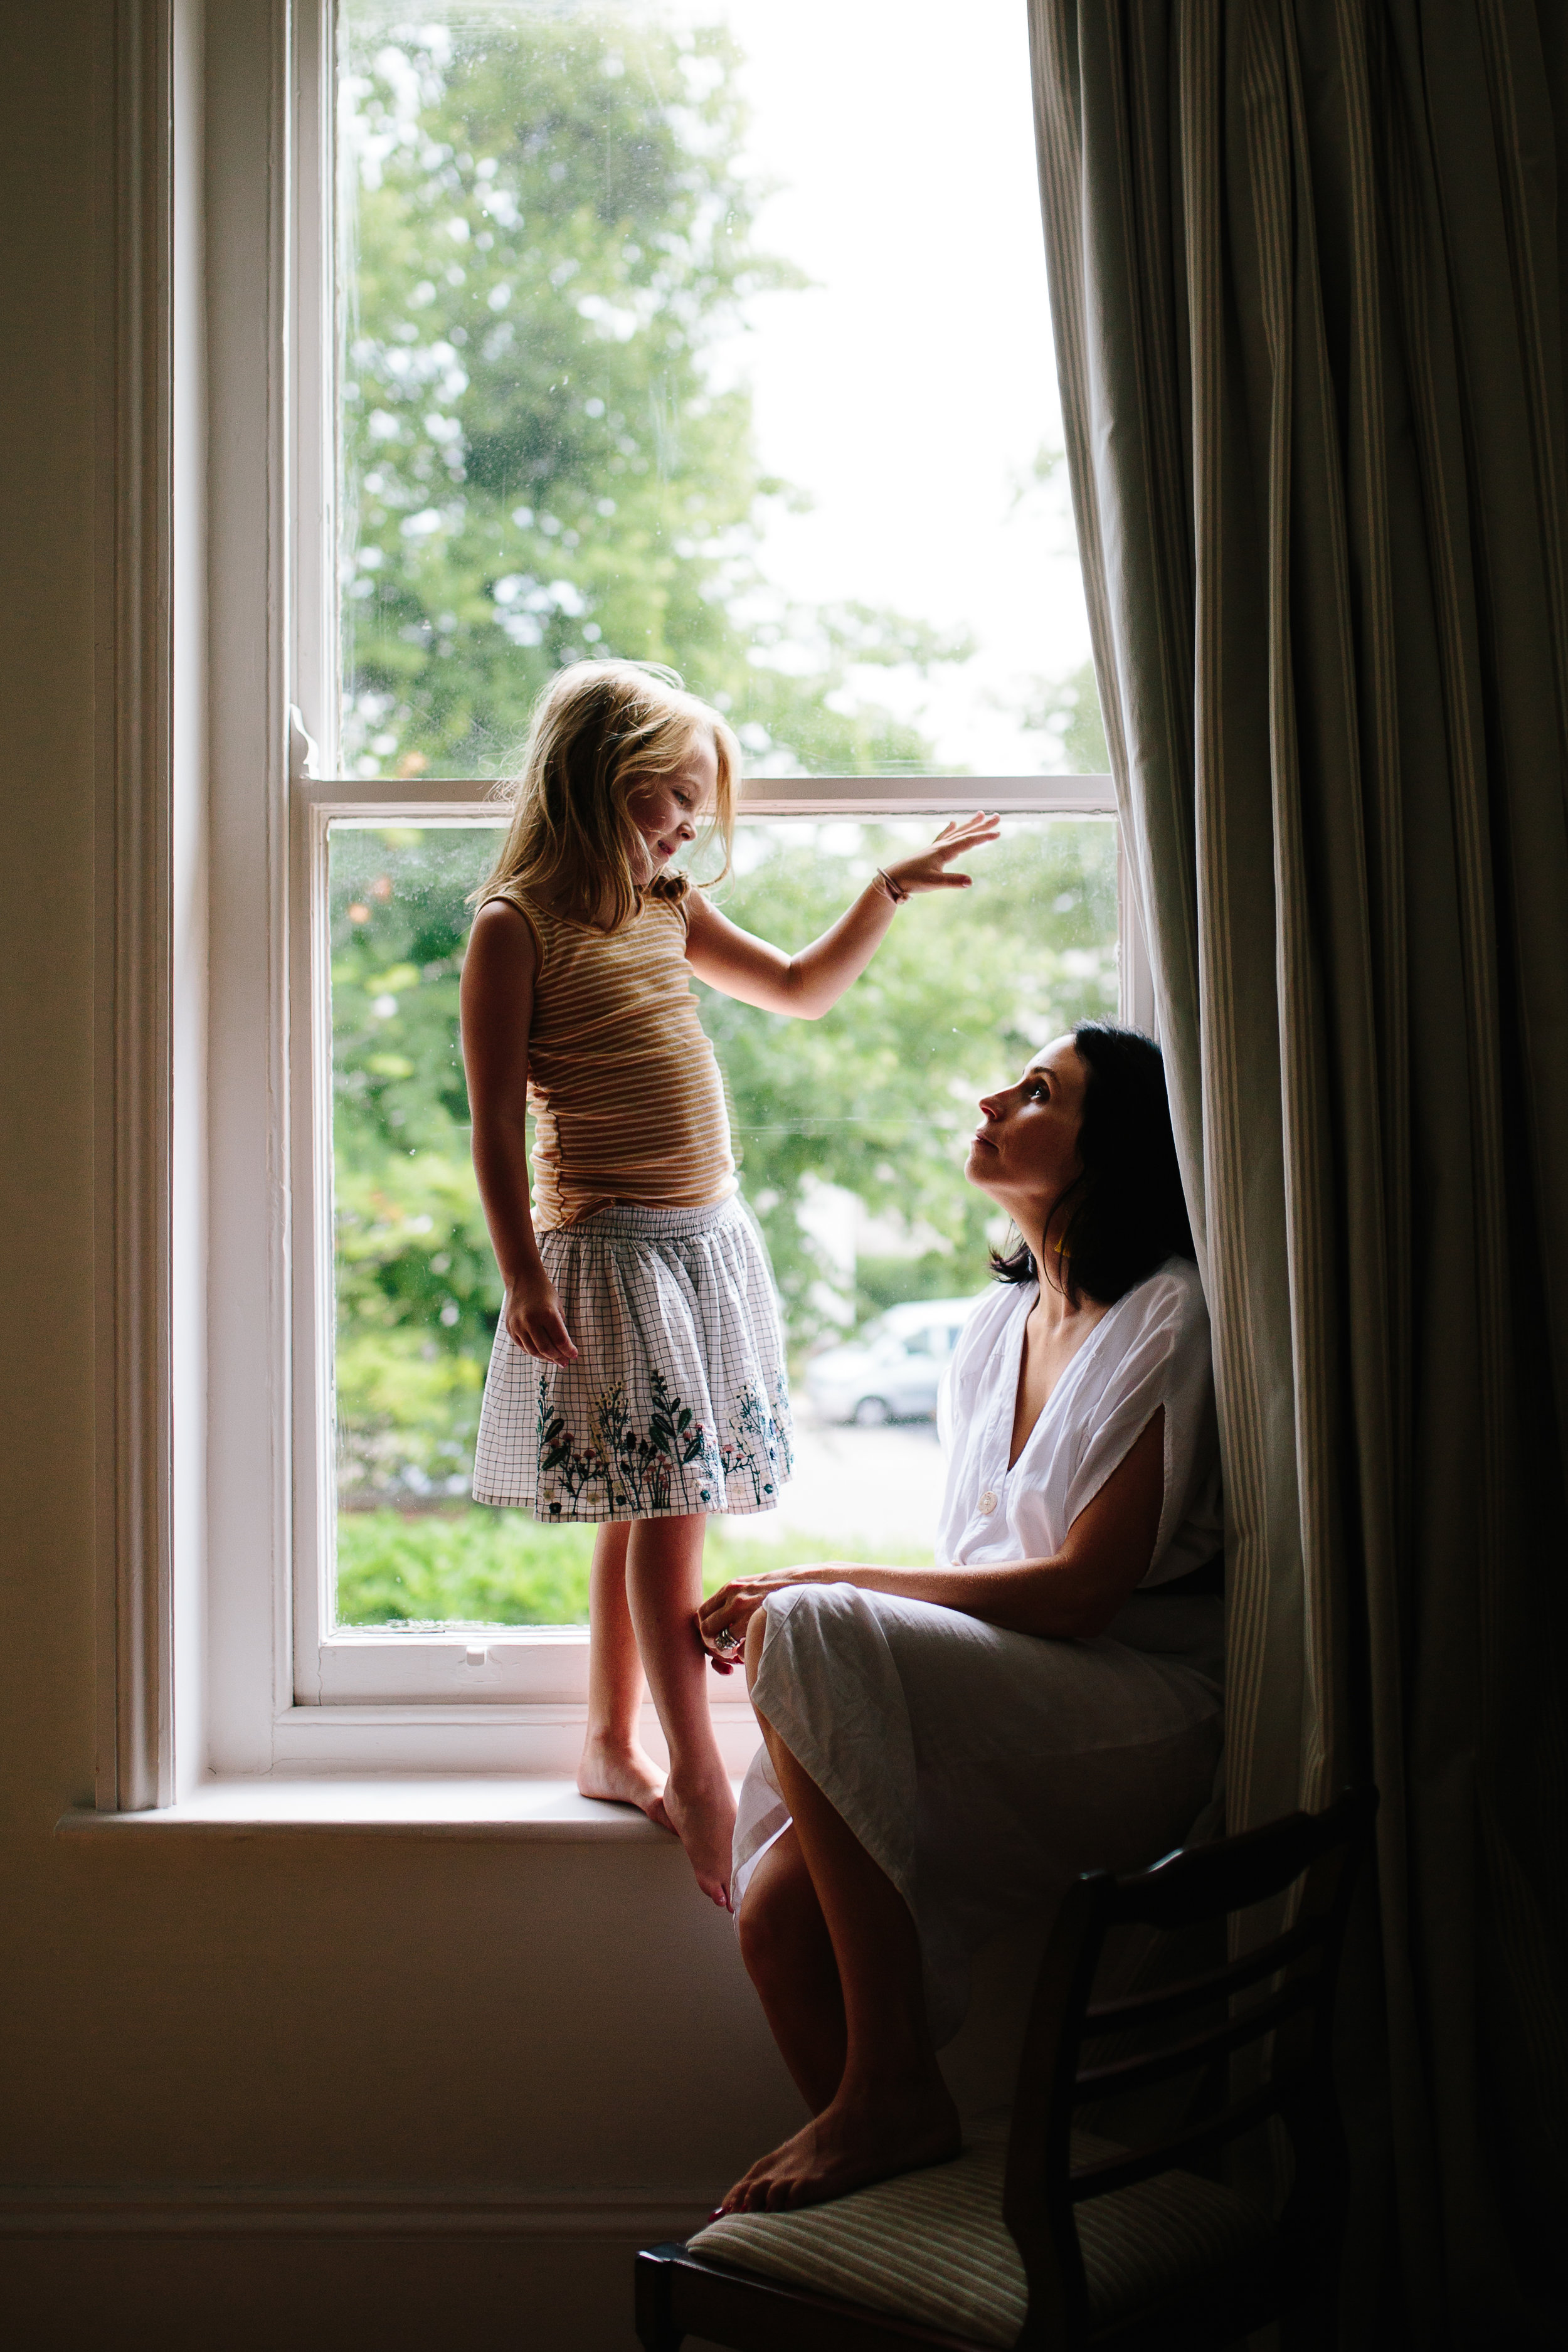 Mum and daughter in window light